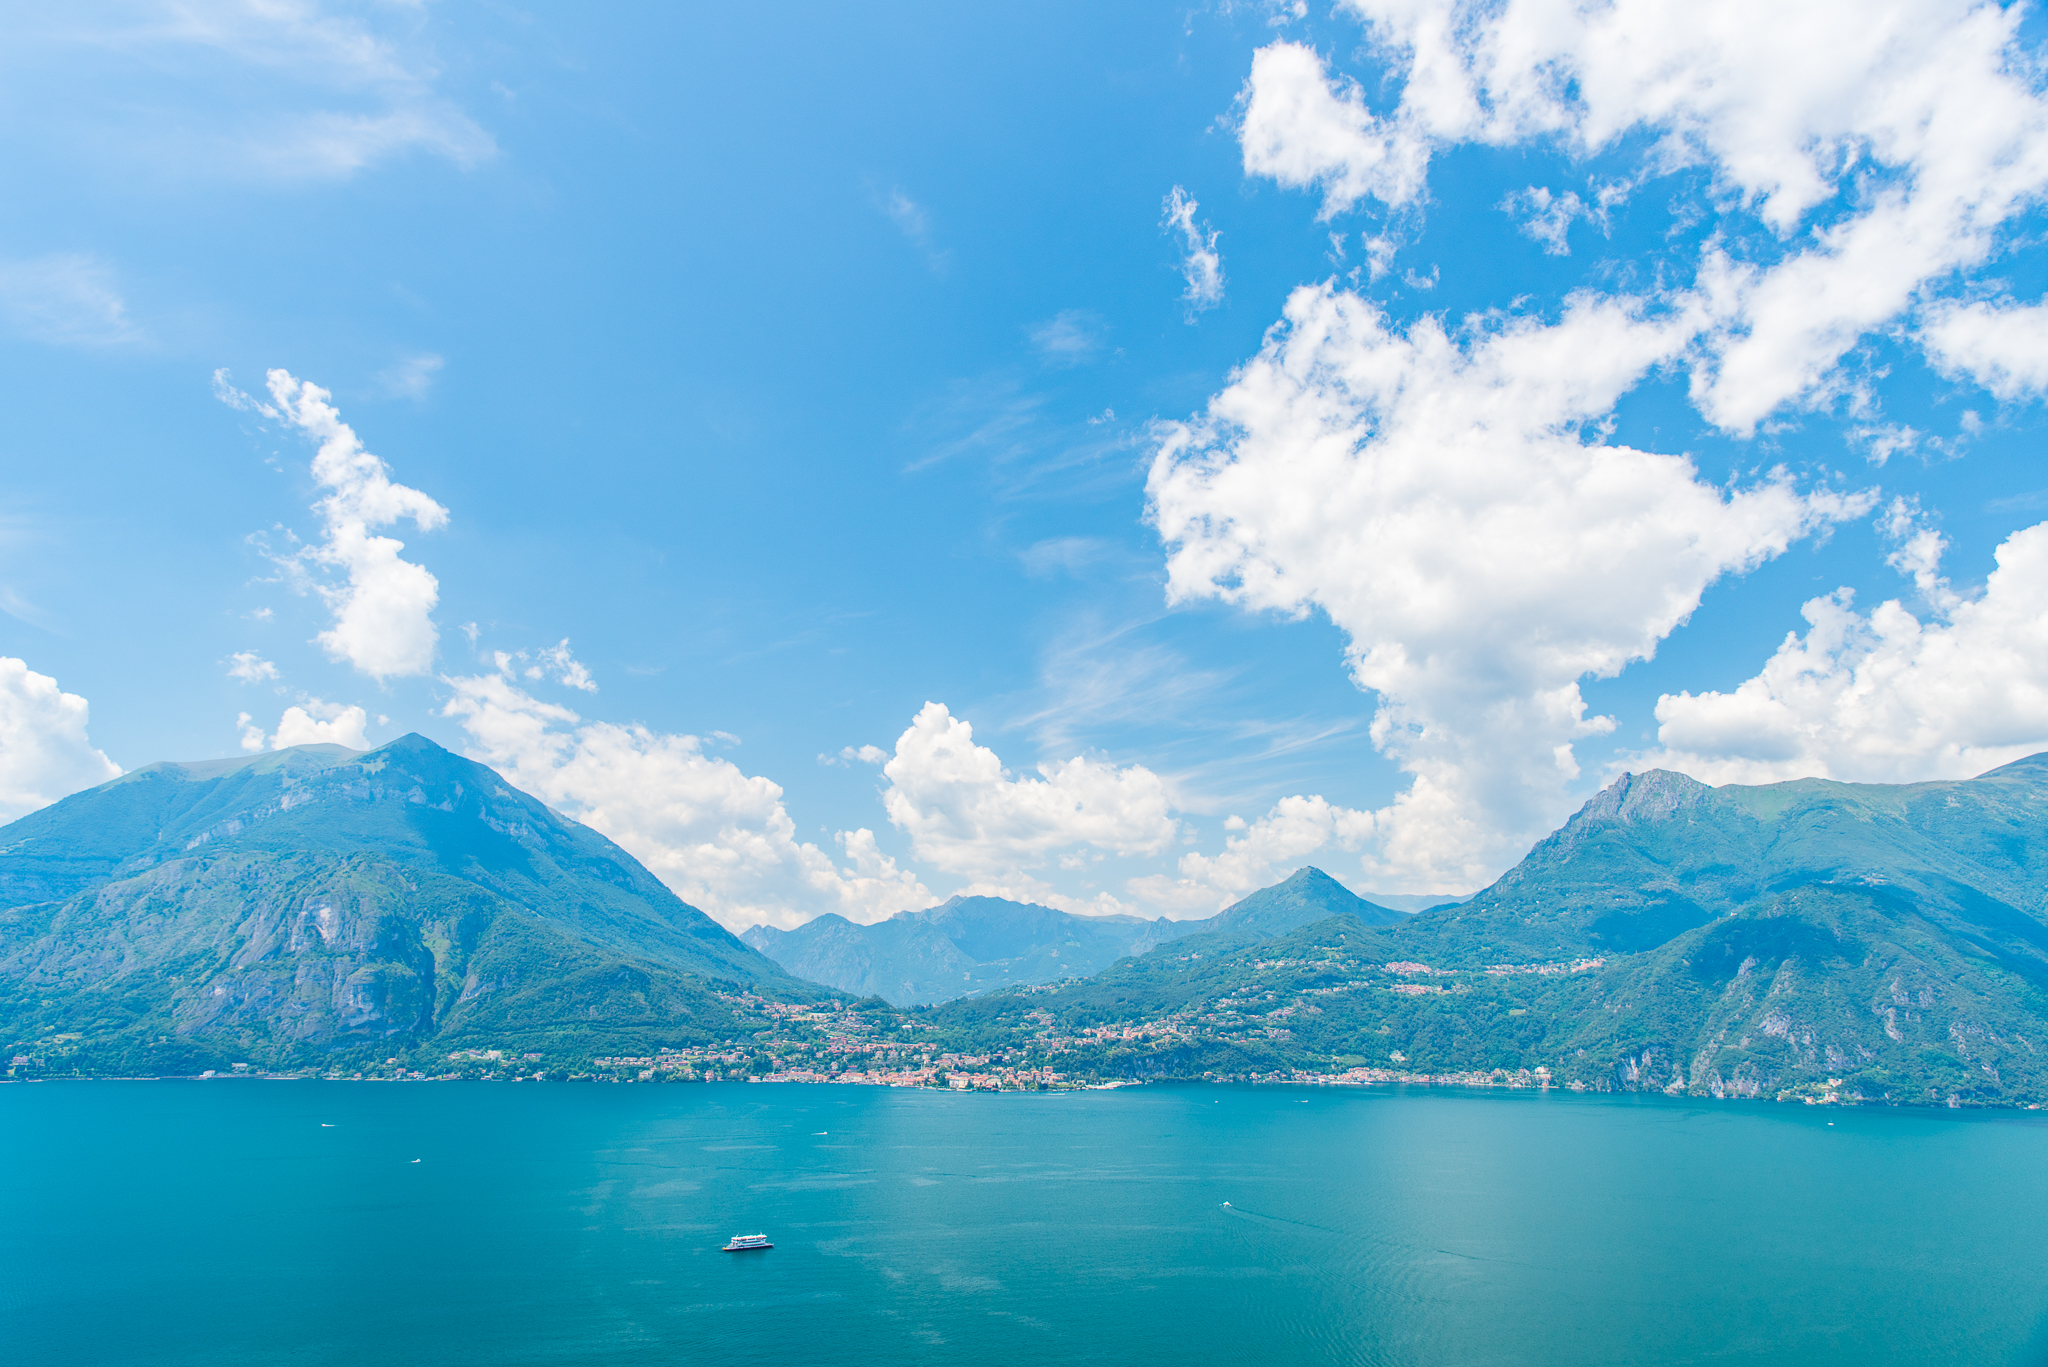 A weekend by Lake Como